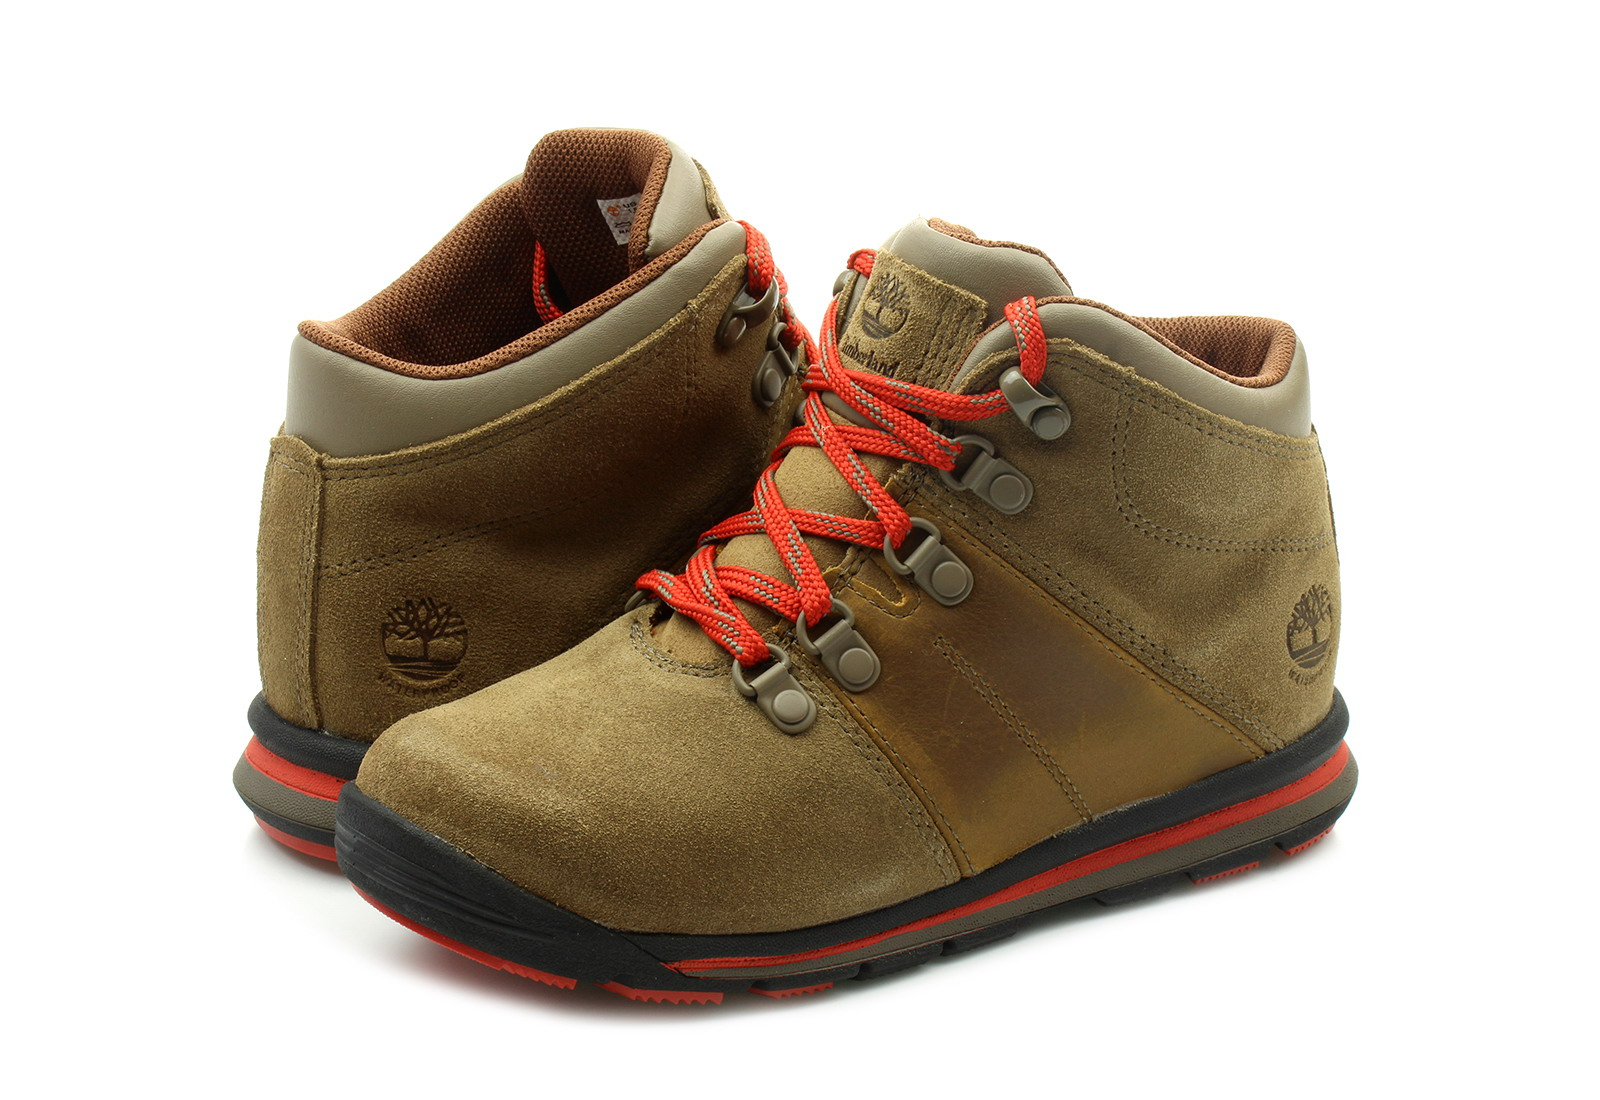 68347193f3b6 Timberland Boots - Gt Rally Mid Wp - A1QCJ-tor - Online shop for ...